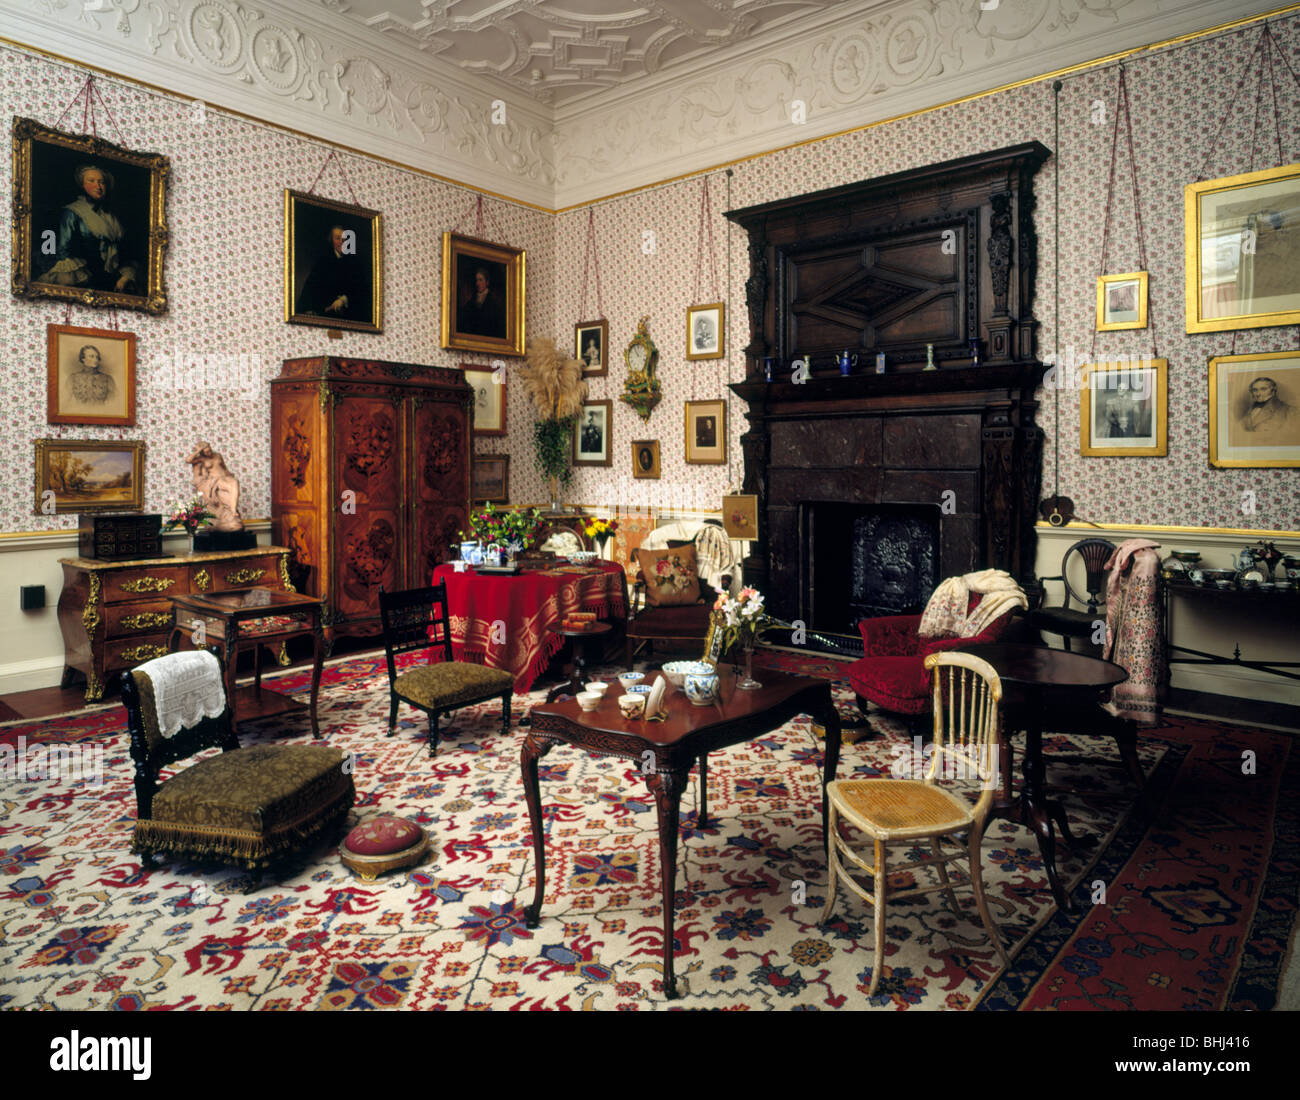 Lady Braybrooke's Sitting Room, Audley End House, Saffron Walden, Essex, 1994. Artist: Paul Highnam Stock Photo